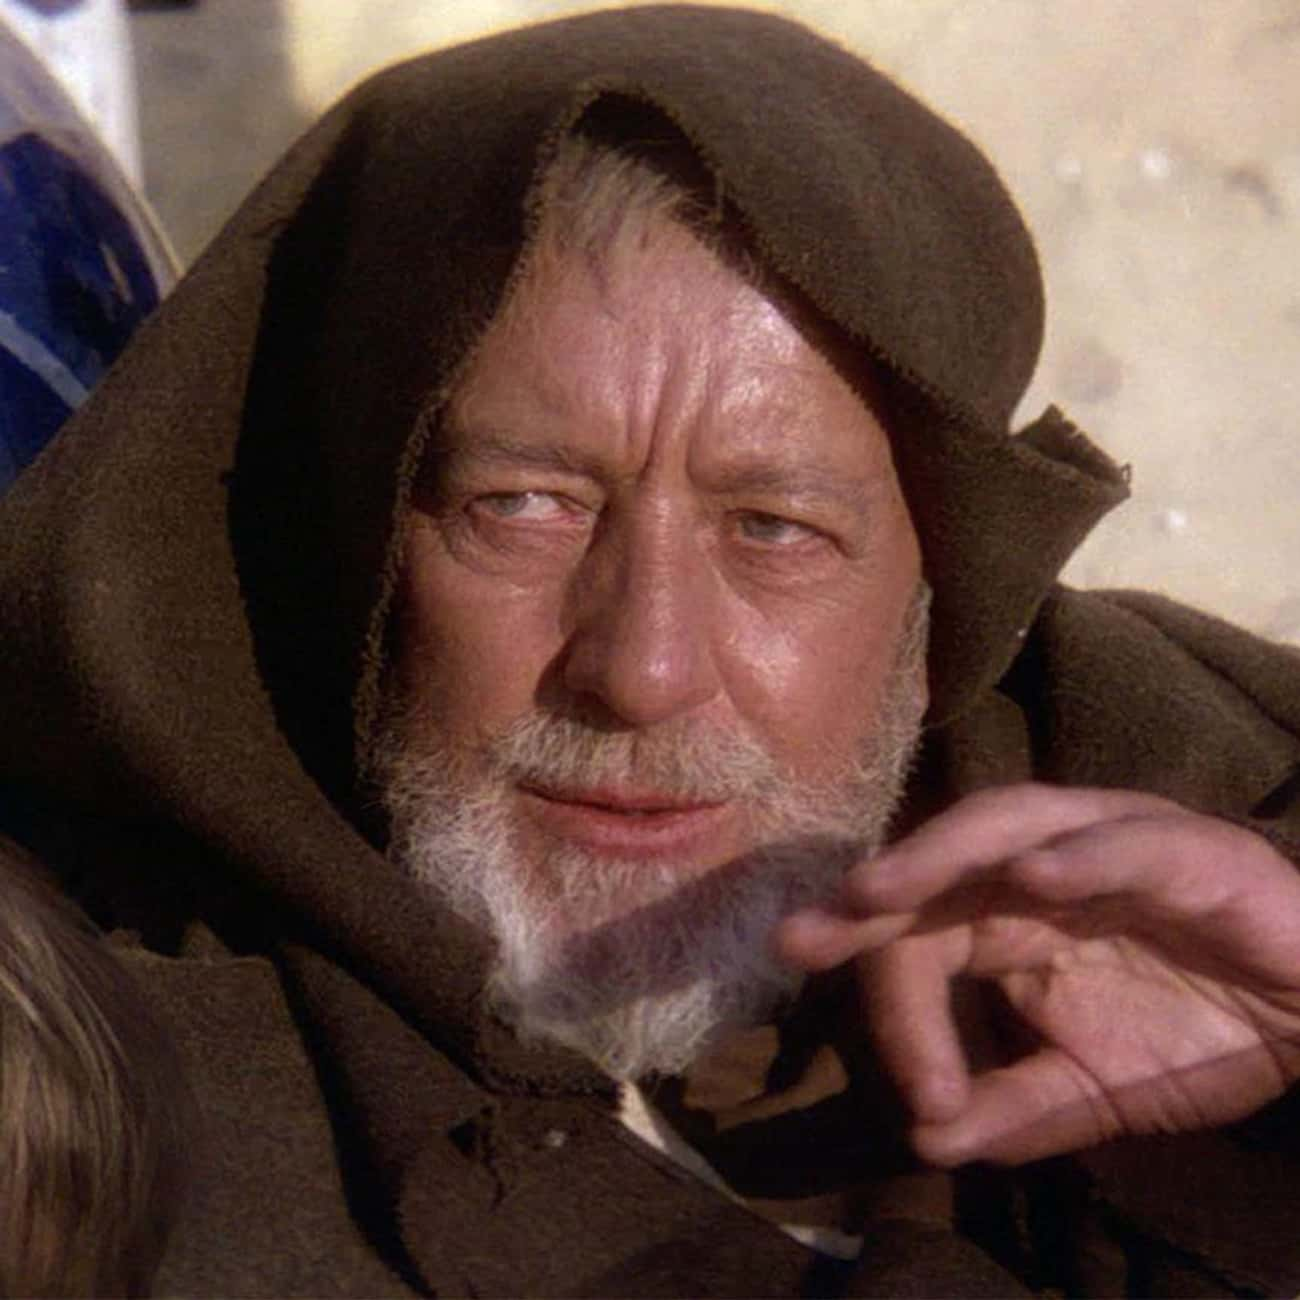 Not The Droids is listed (or ranked) 1 on the list The Best and Wisest Obi-Wan Kenobi Quotes